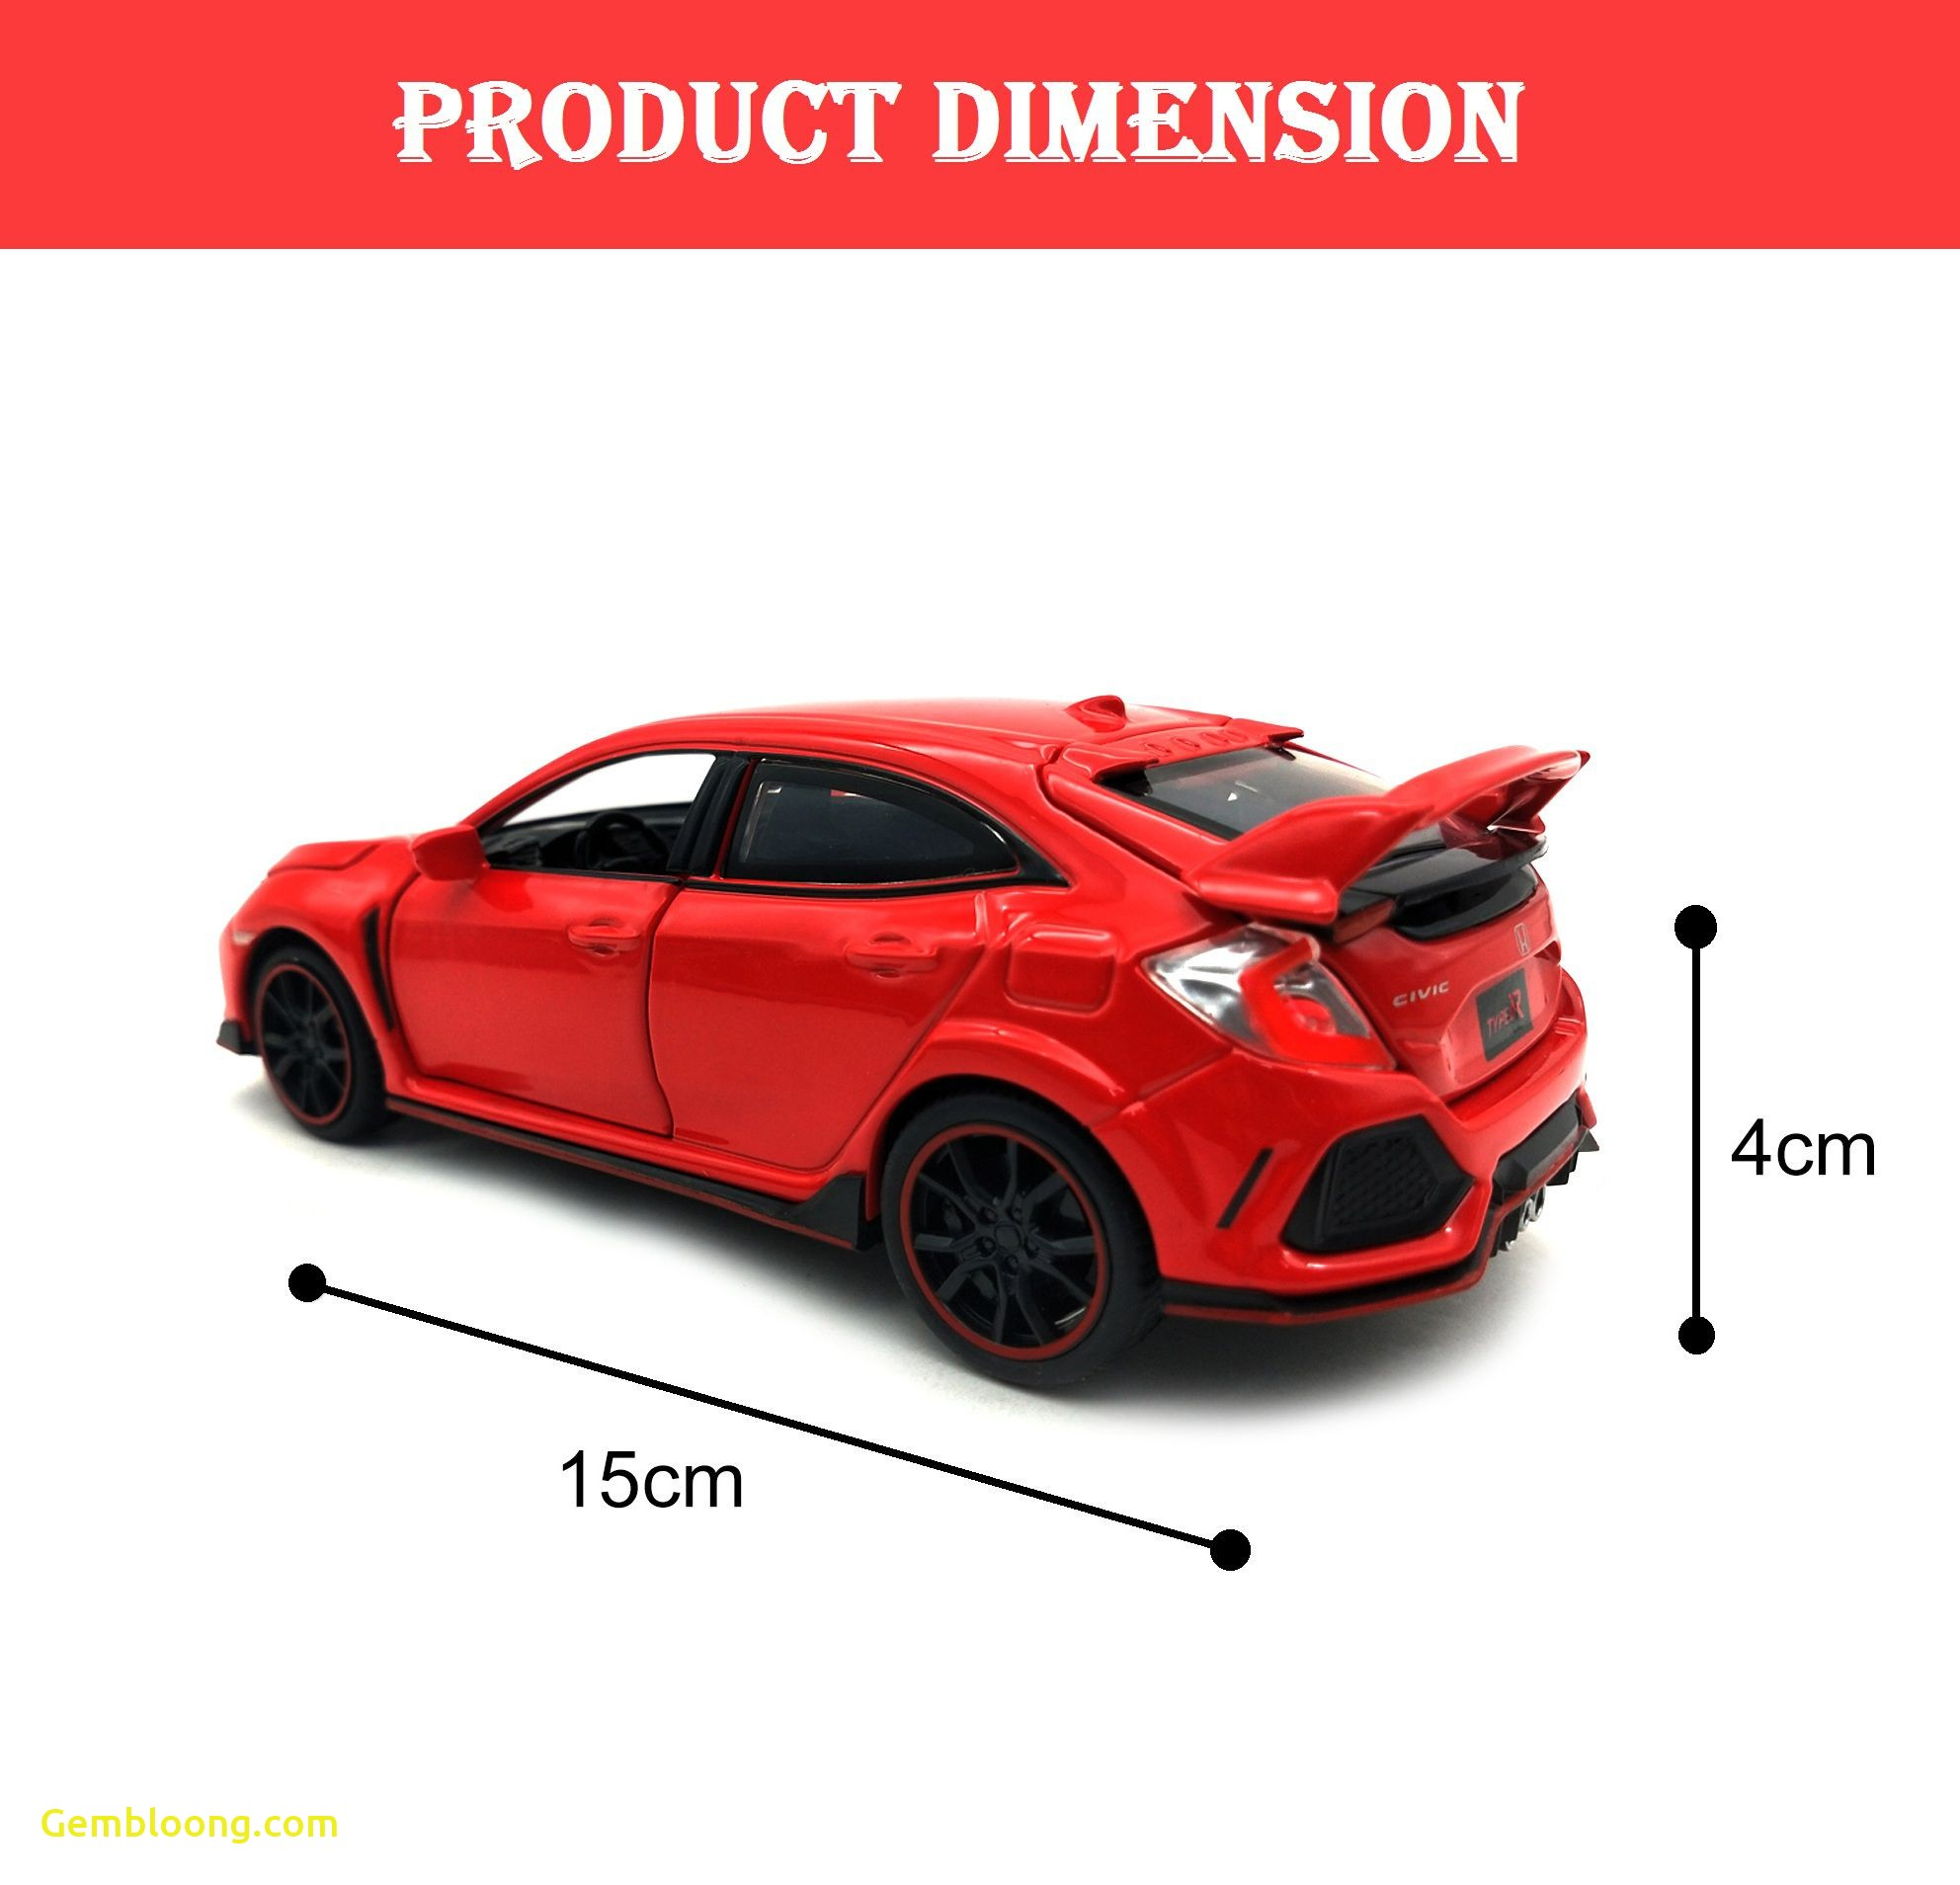 Cars for Sale Near Me Mini Fresh Mini Auto Red 1 32 Scale Diecast Metal Honda Civic Type R Model Pull Back Car toy with Openable Doors Light and sound Red